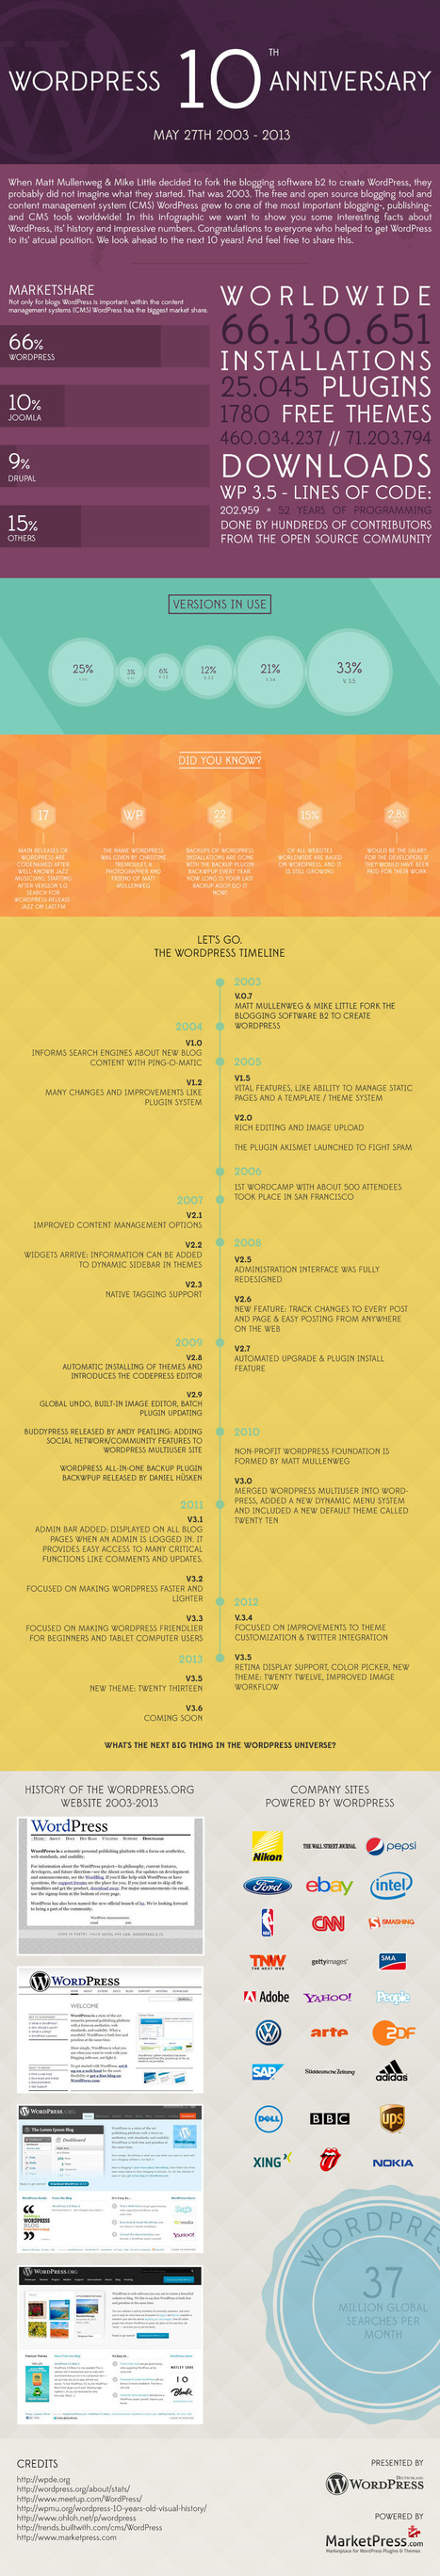 WordPress' 10th Anniversary: The Decade To Be Proud of [Infographic] | WordPress Pro | Scoop.it